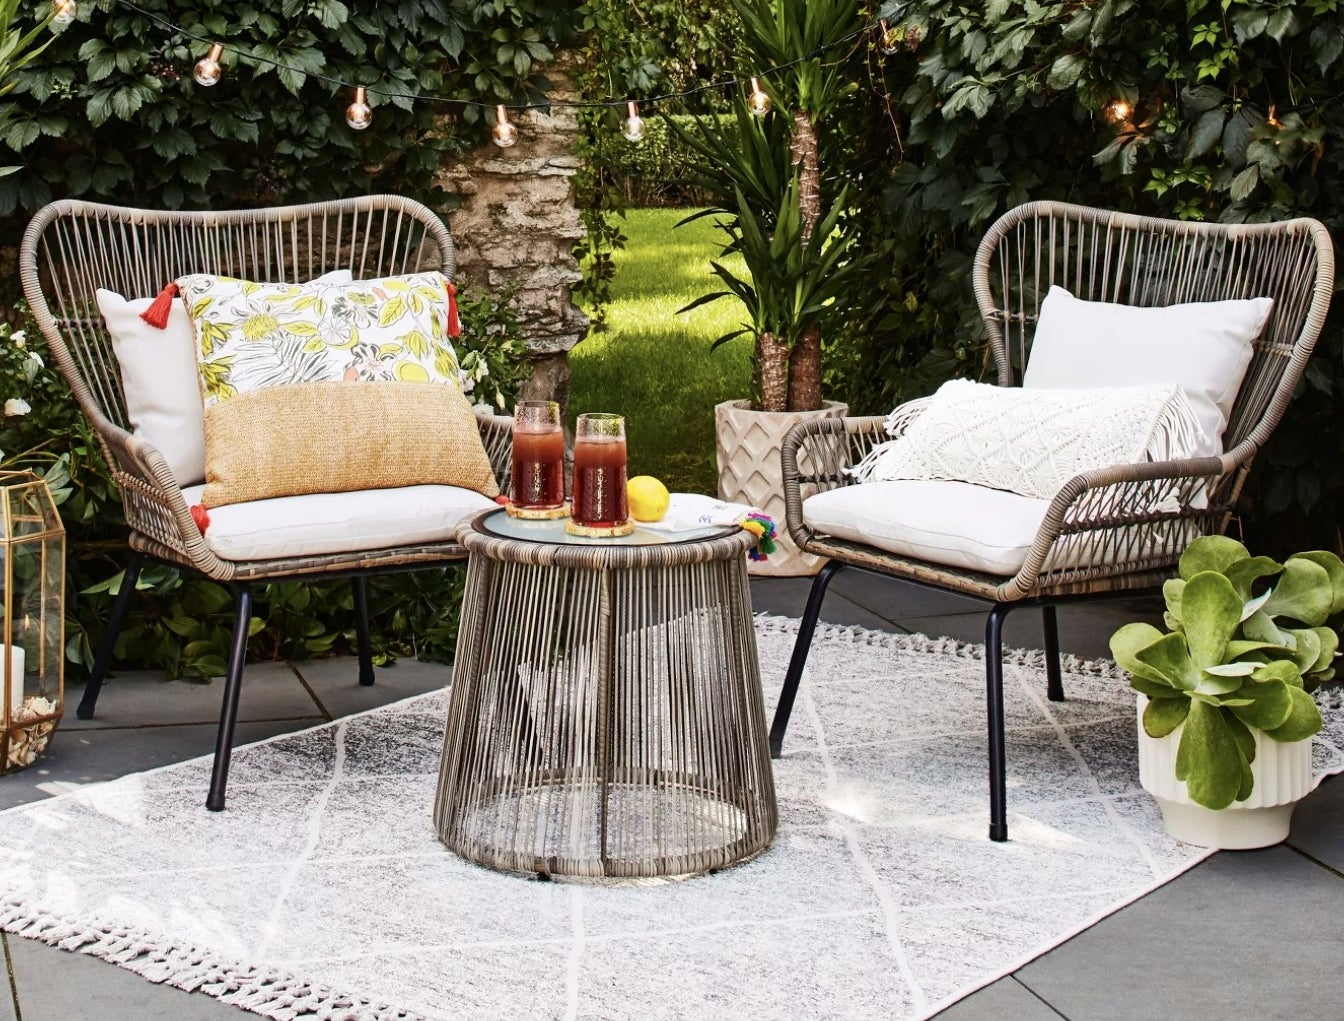 The two chairs and coffee table patio set